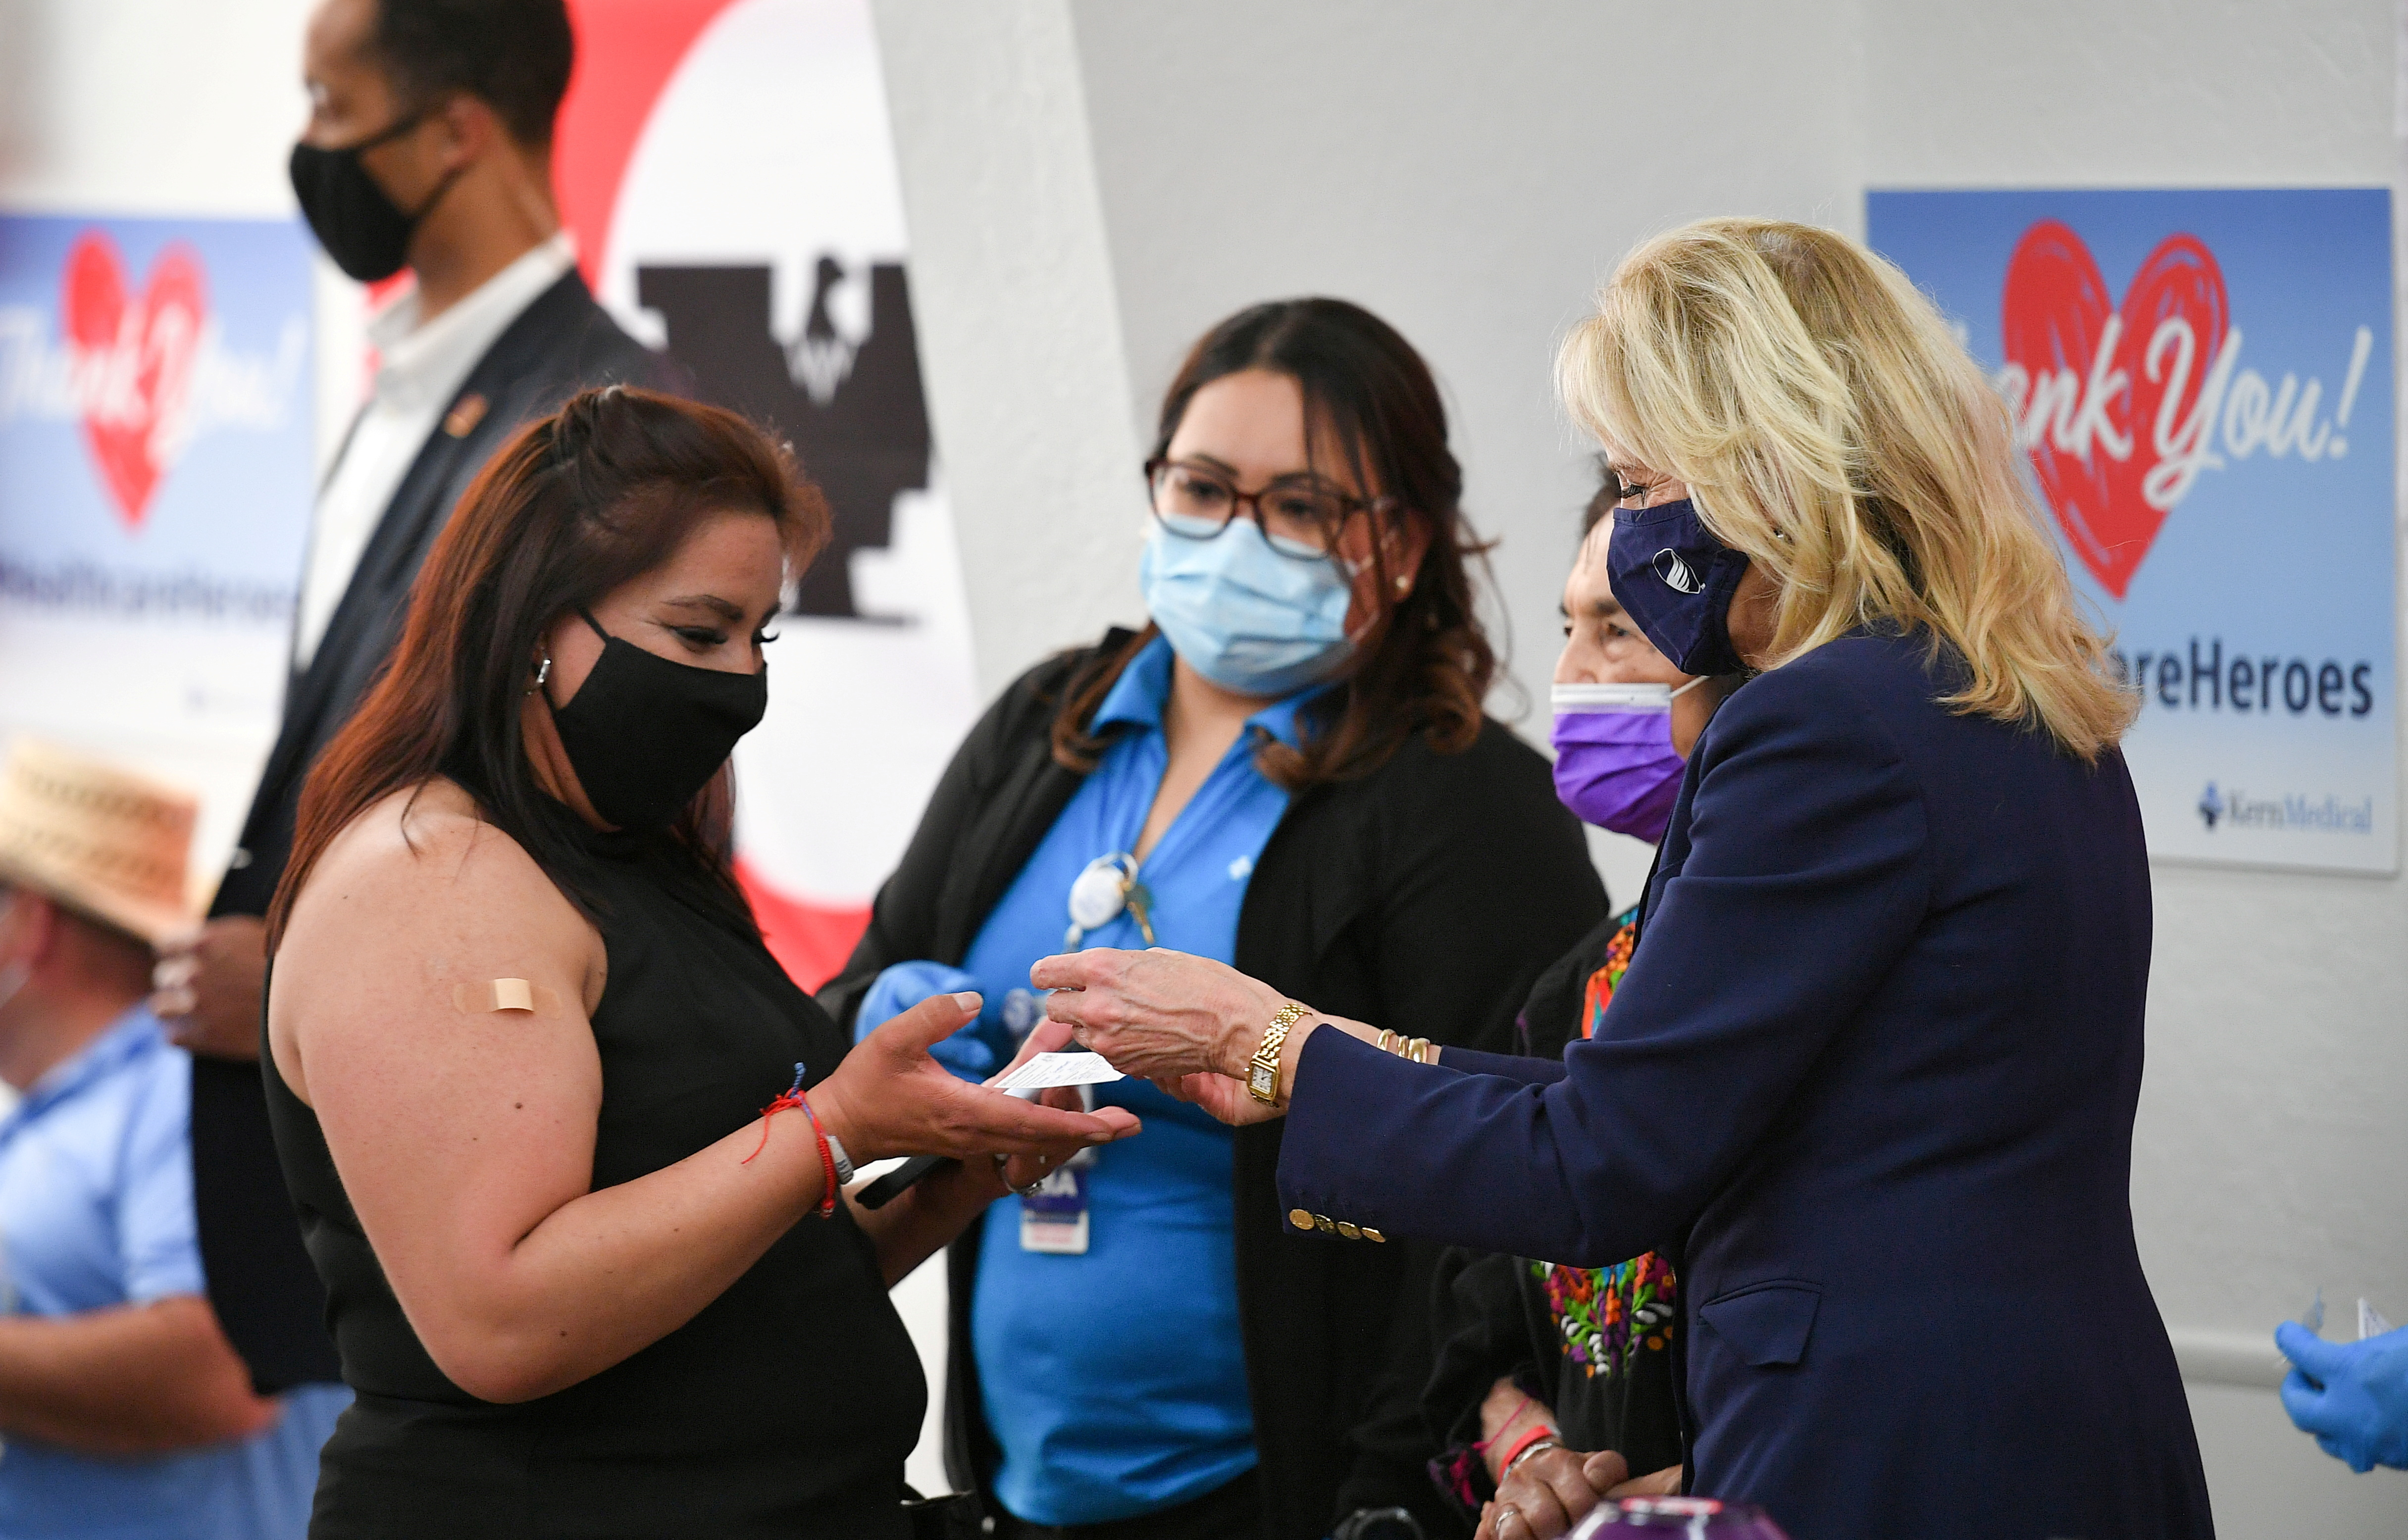 U.S. First Lady Jill Biden hands out a vaccination card along with a pin to a woman who just received her second vaccine shot in Delano, California on March 31, 2021. Mandel Ngan/Pool via REUTERS/File Photo